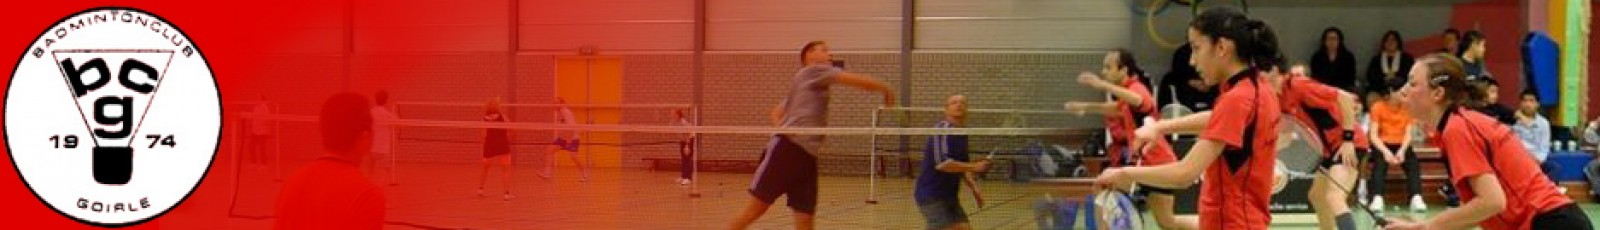 Badminton Club Goirle